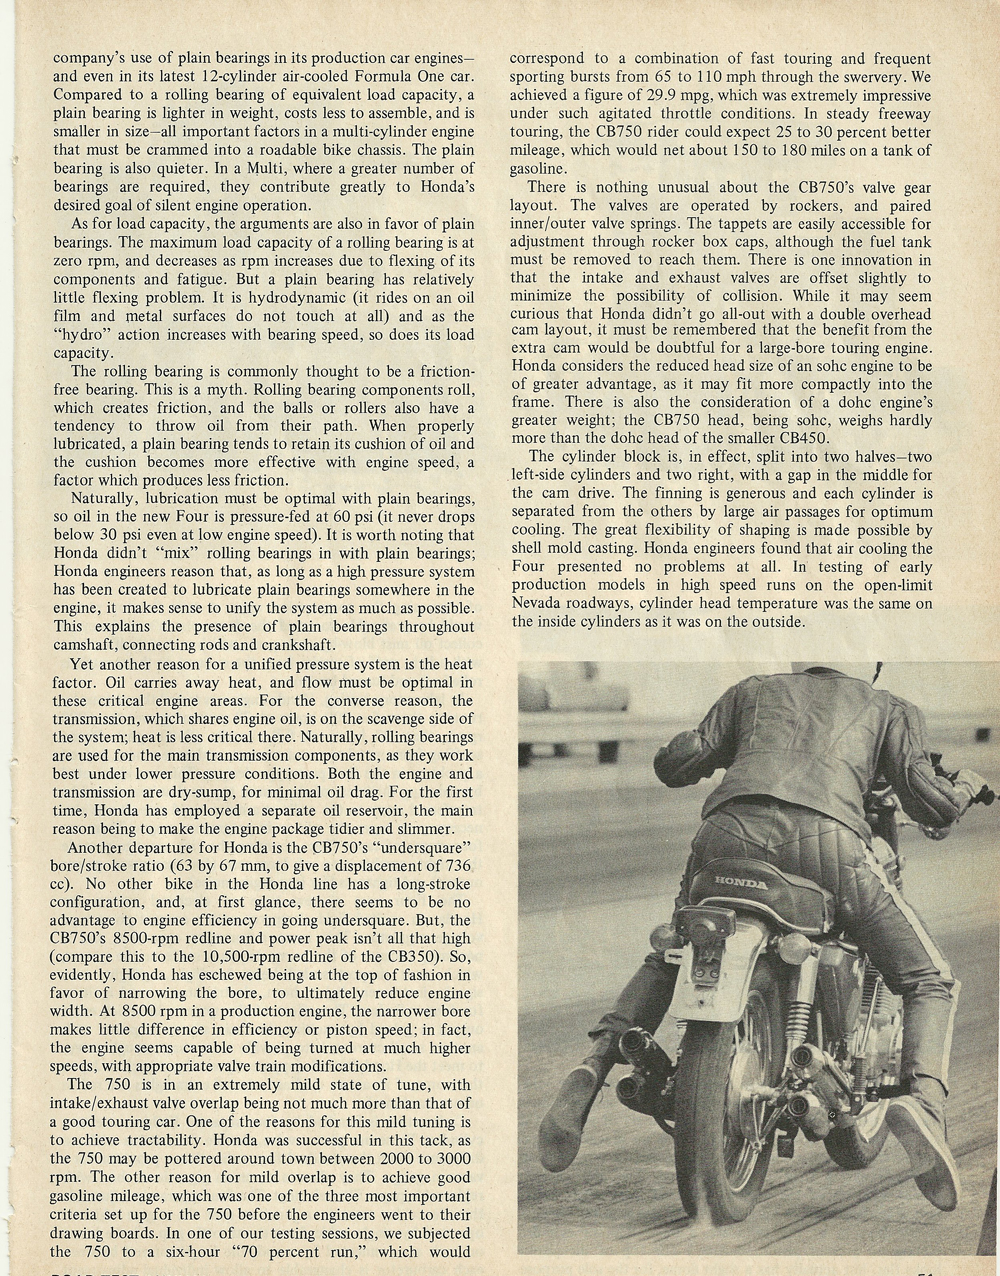 1969 Honda CB750 road test 3.jpg